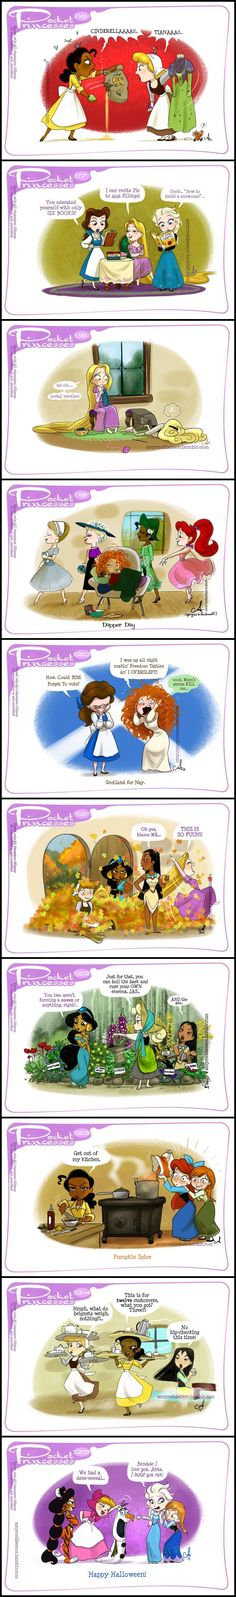 Pocket Princesses (Part 12) by Amy Mebberson